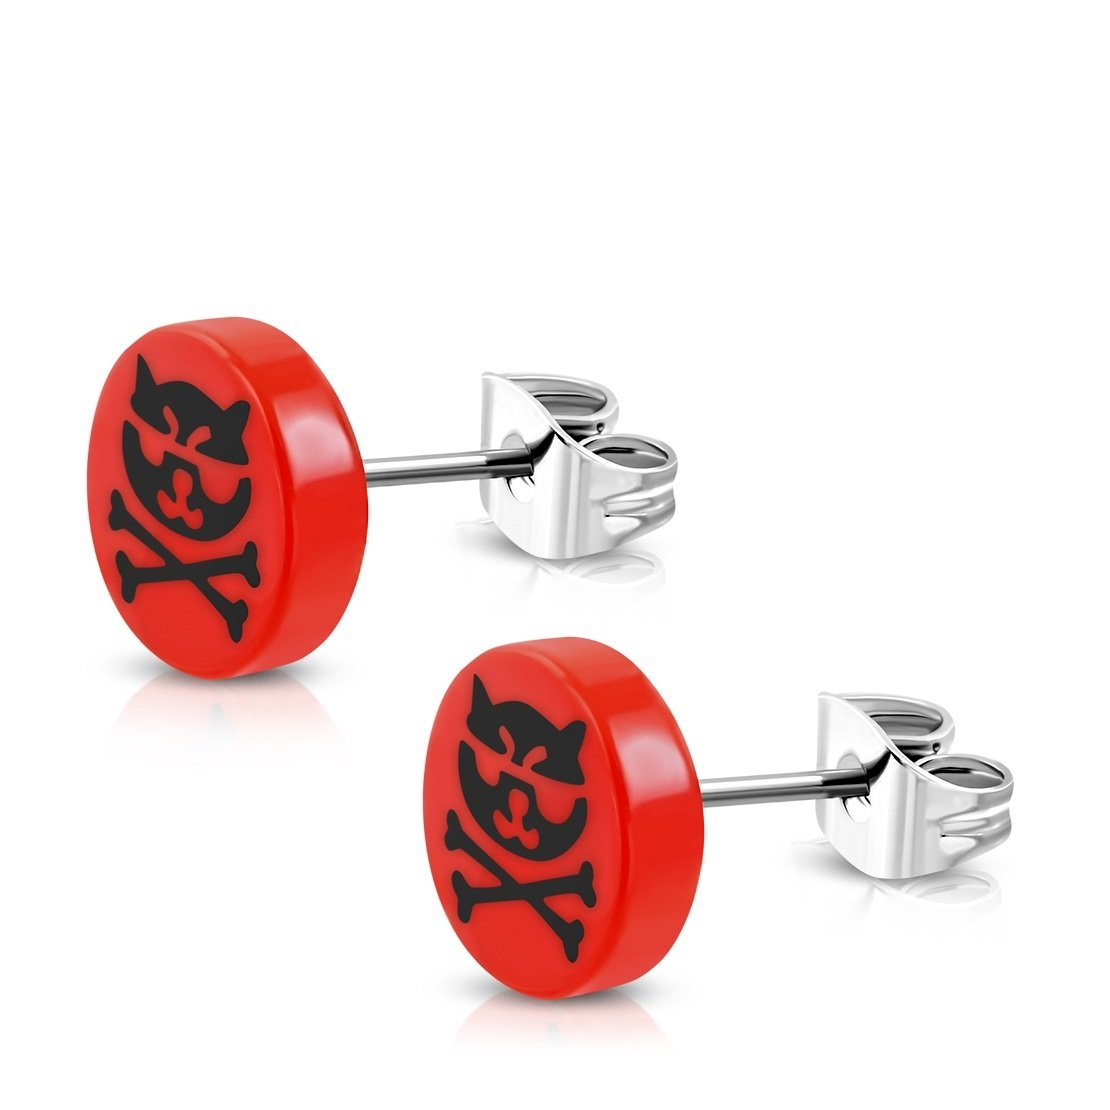 pair Stainless Steel Stud with Red Acrylic 3 Color Cat Crossbones Round Circle Earrings